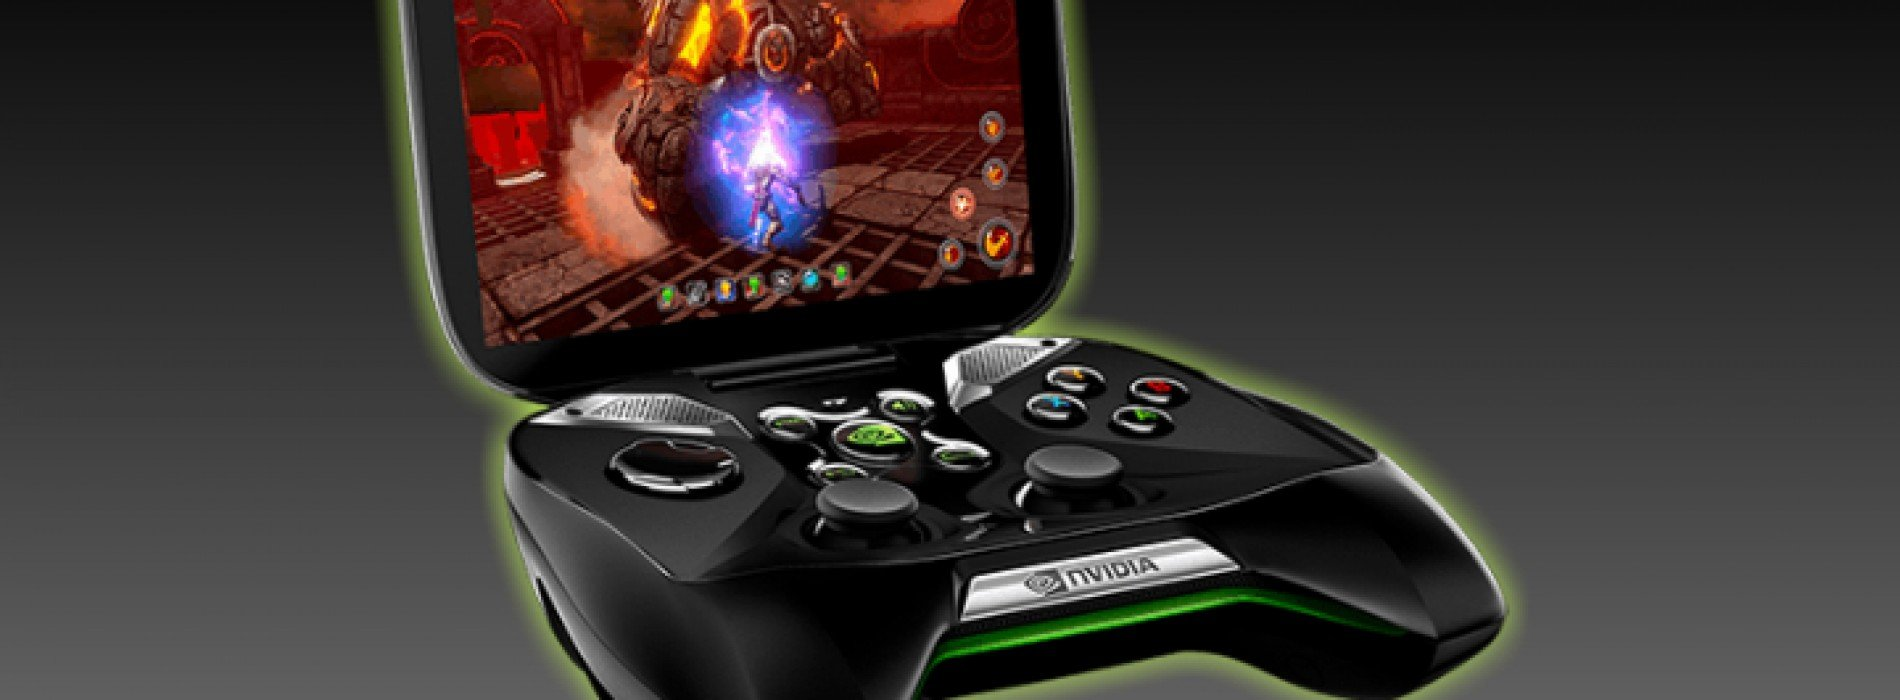 NVIDIA provides back story for Project SHIELD